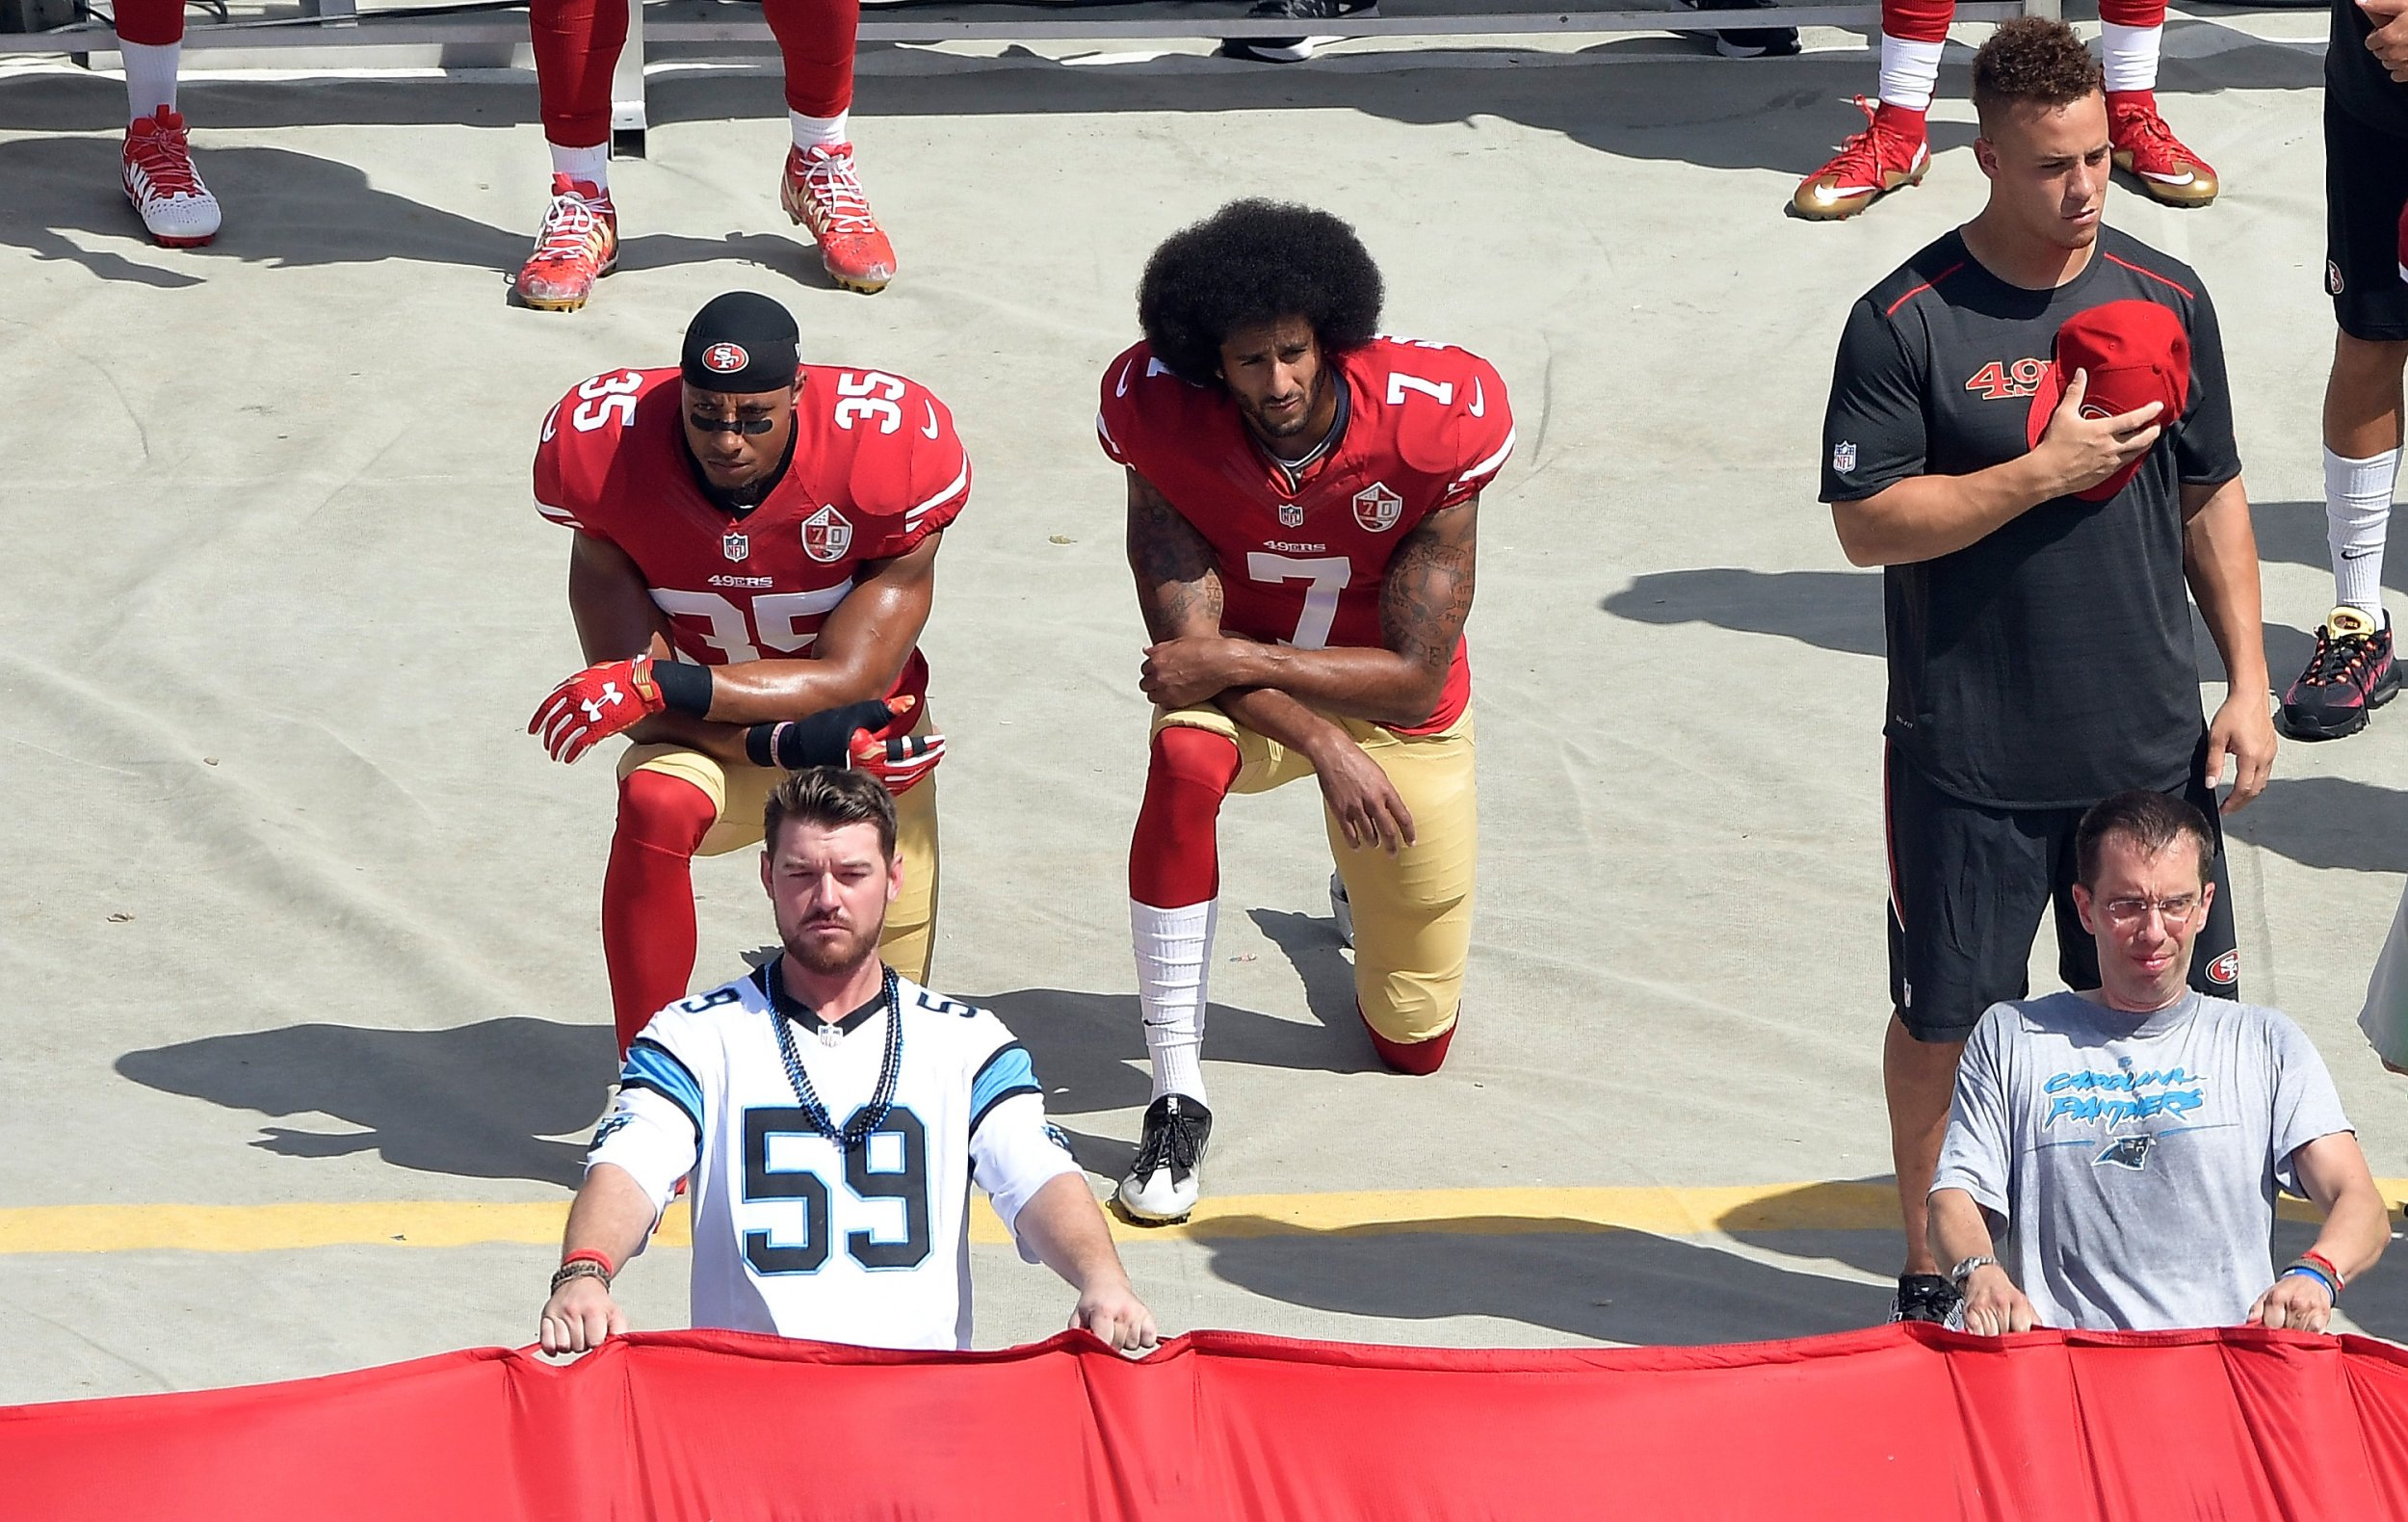 San Francisco 49ers quarterback Colin Kaepernick, center.